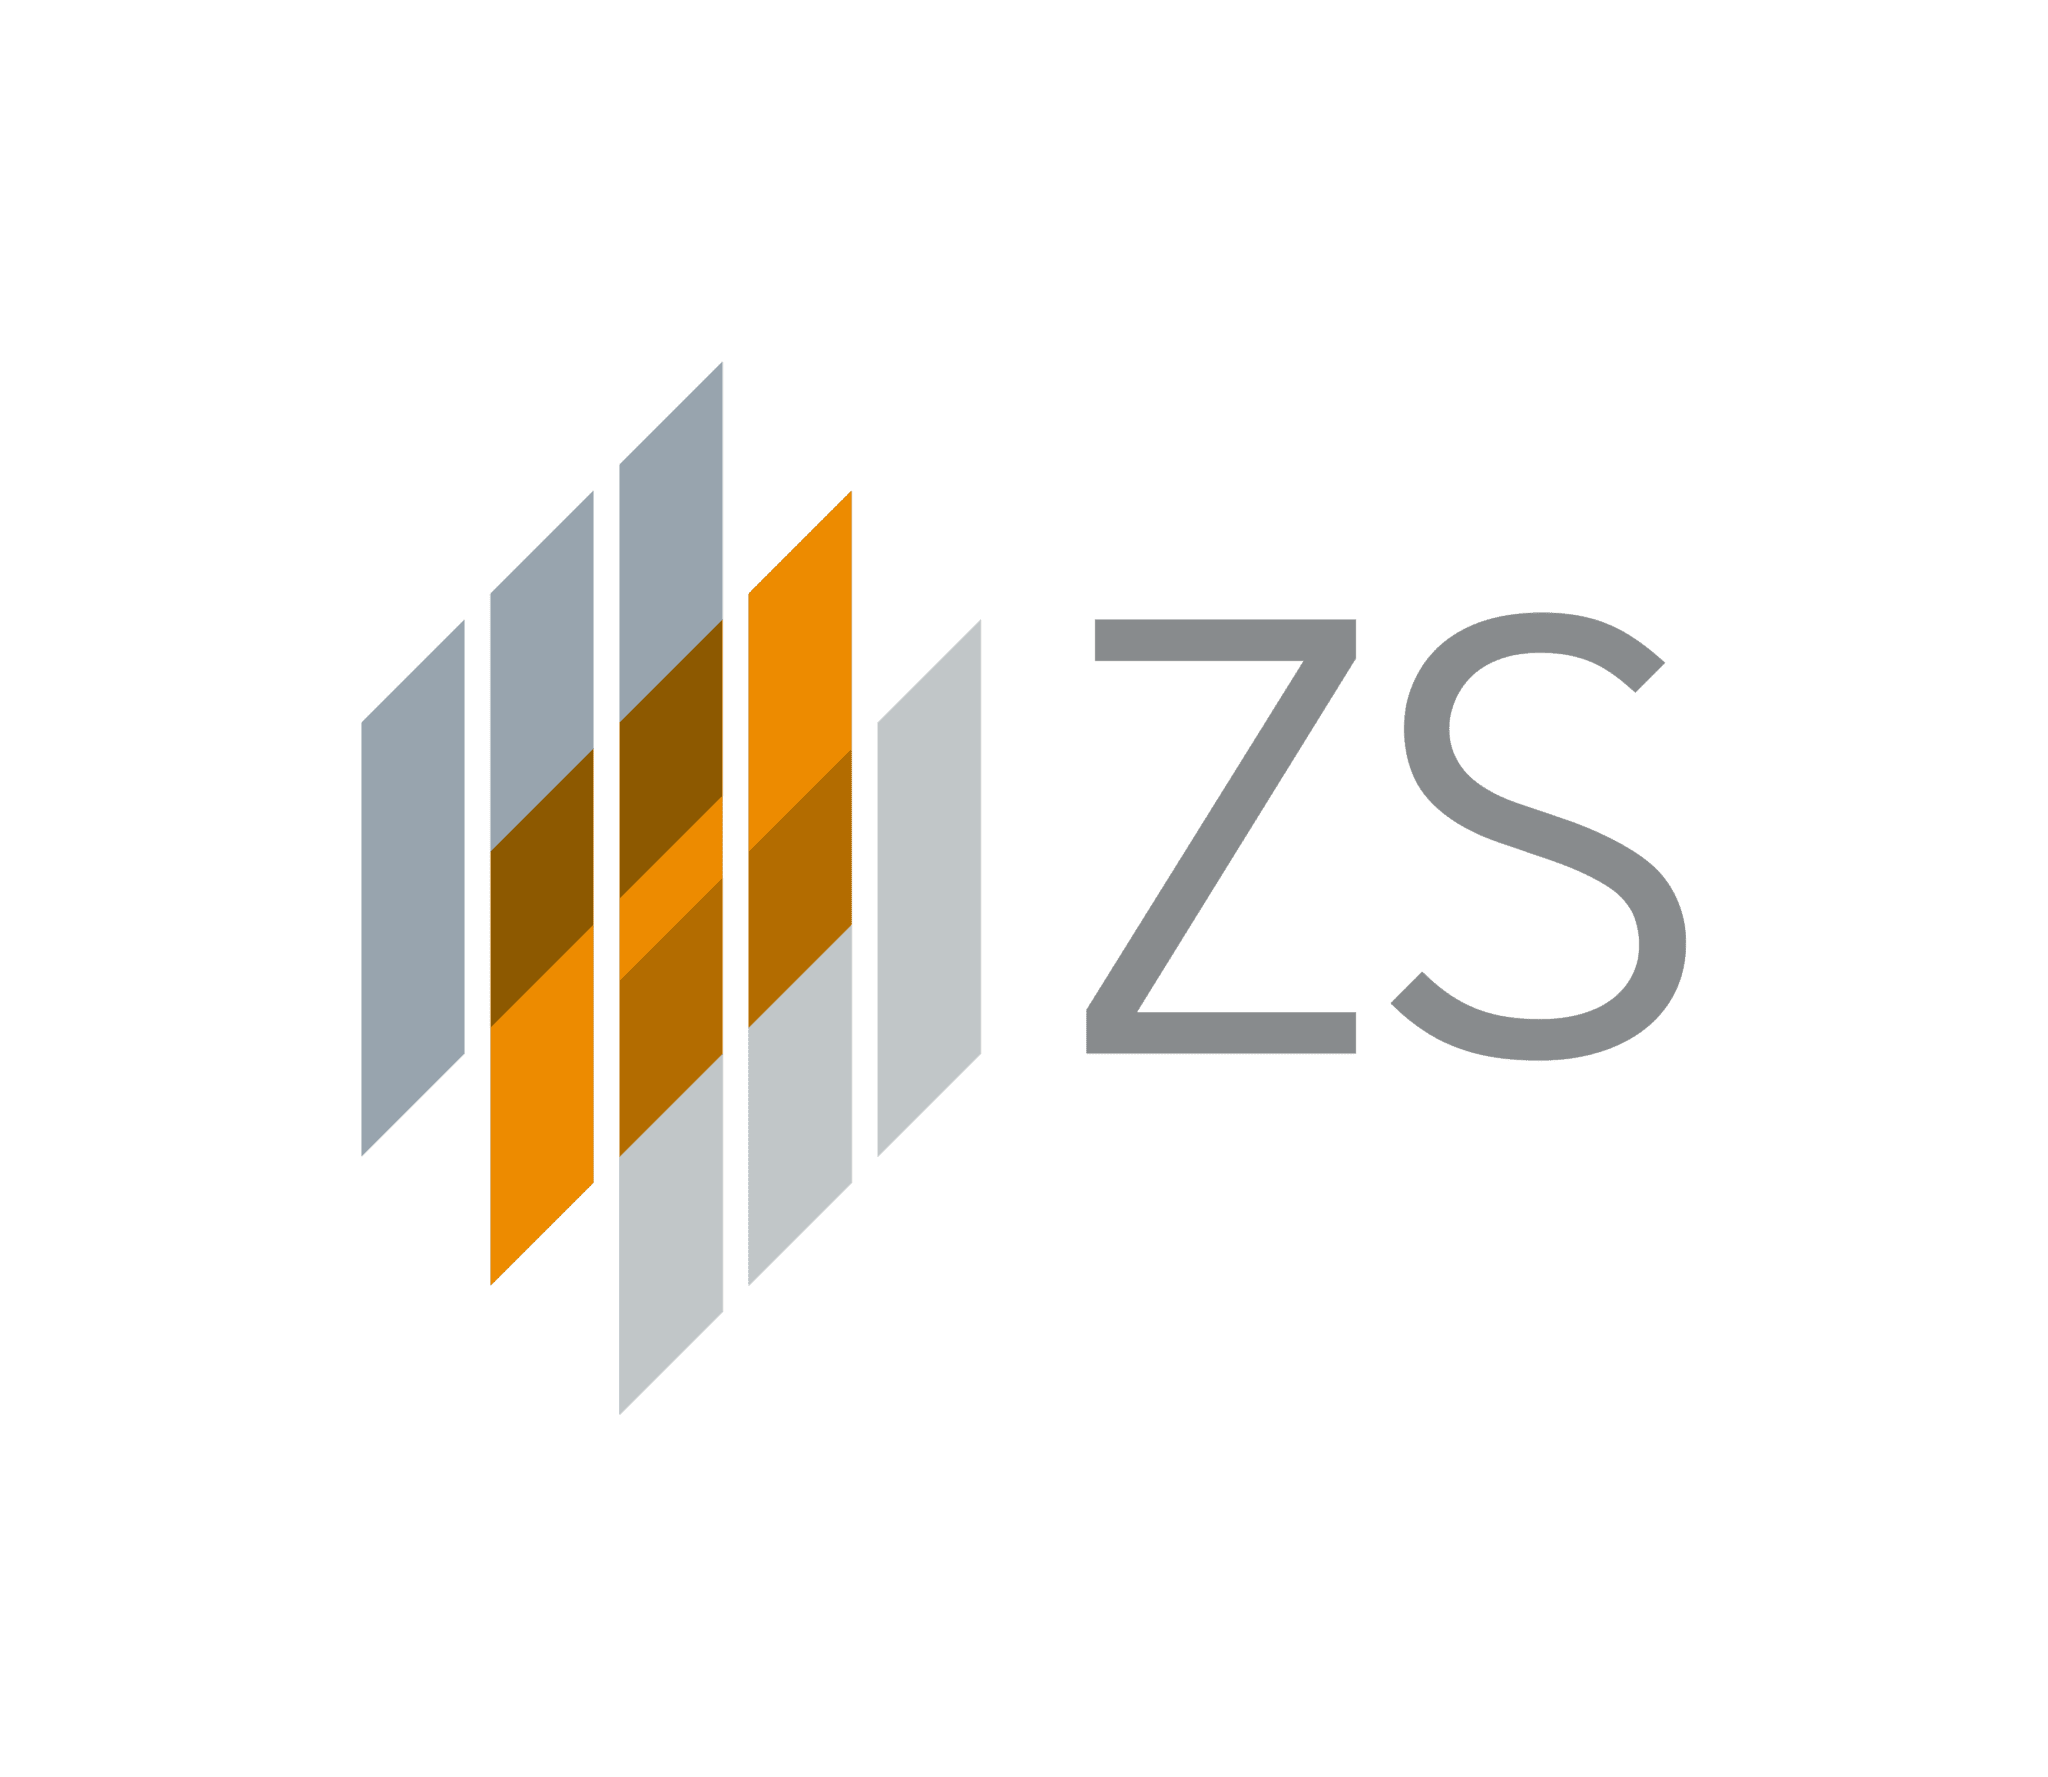 zs_logo_RGB_TRANSPARENT